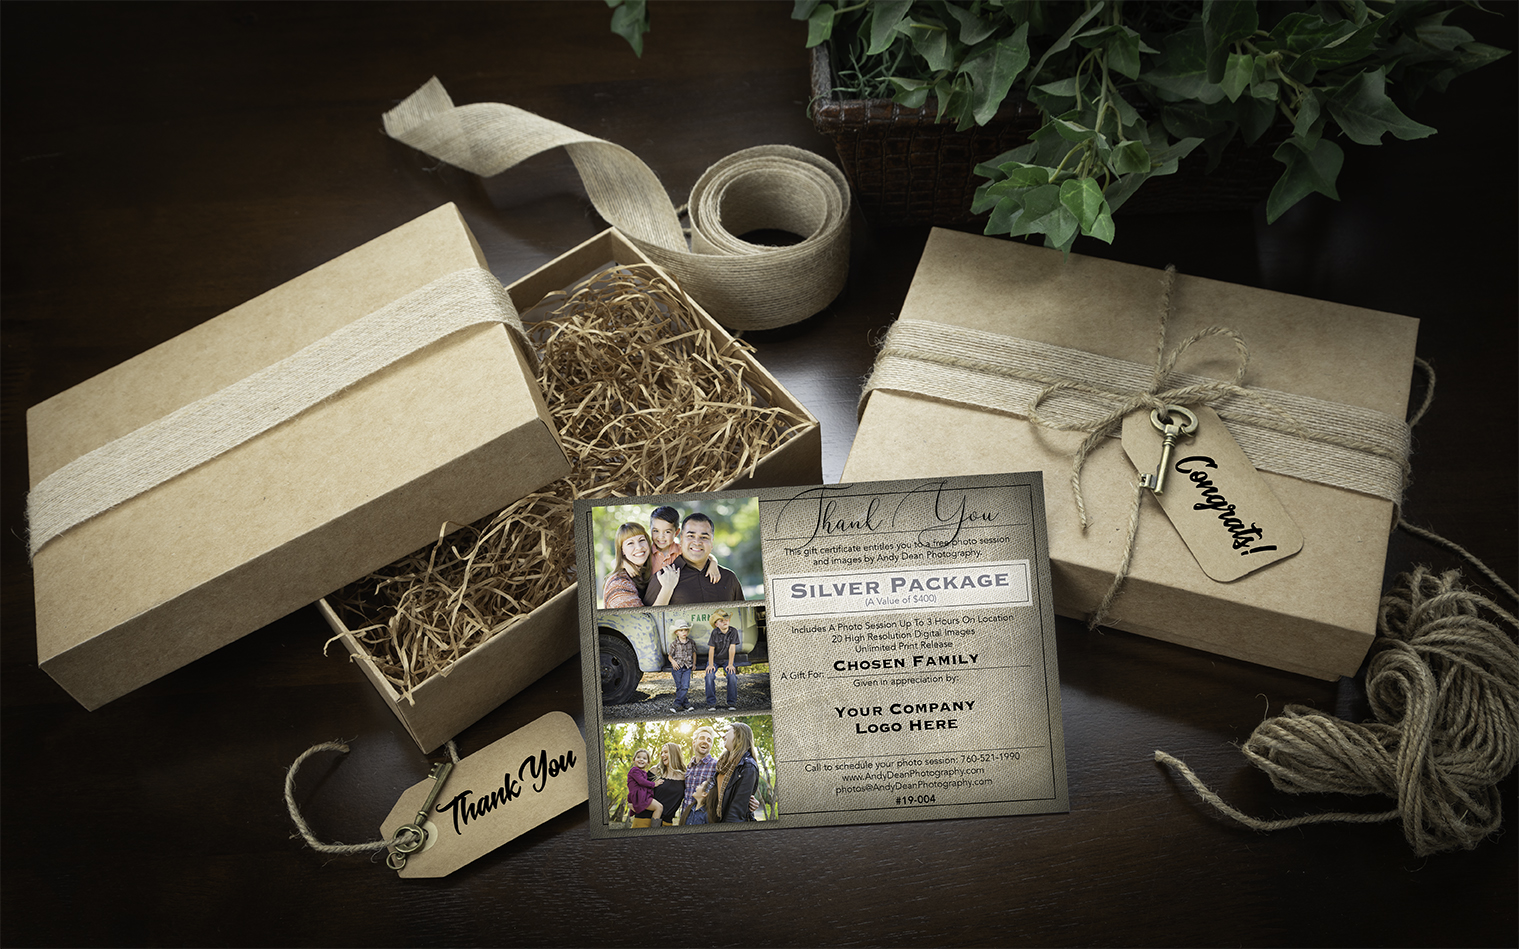 Photo Session Gift Certificates can promote your company name and logo to feature your brand identity.